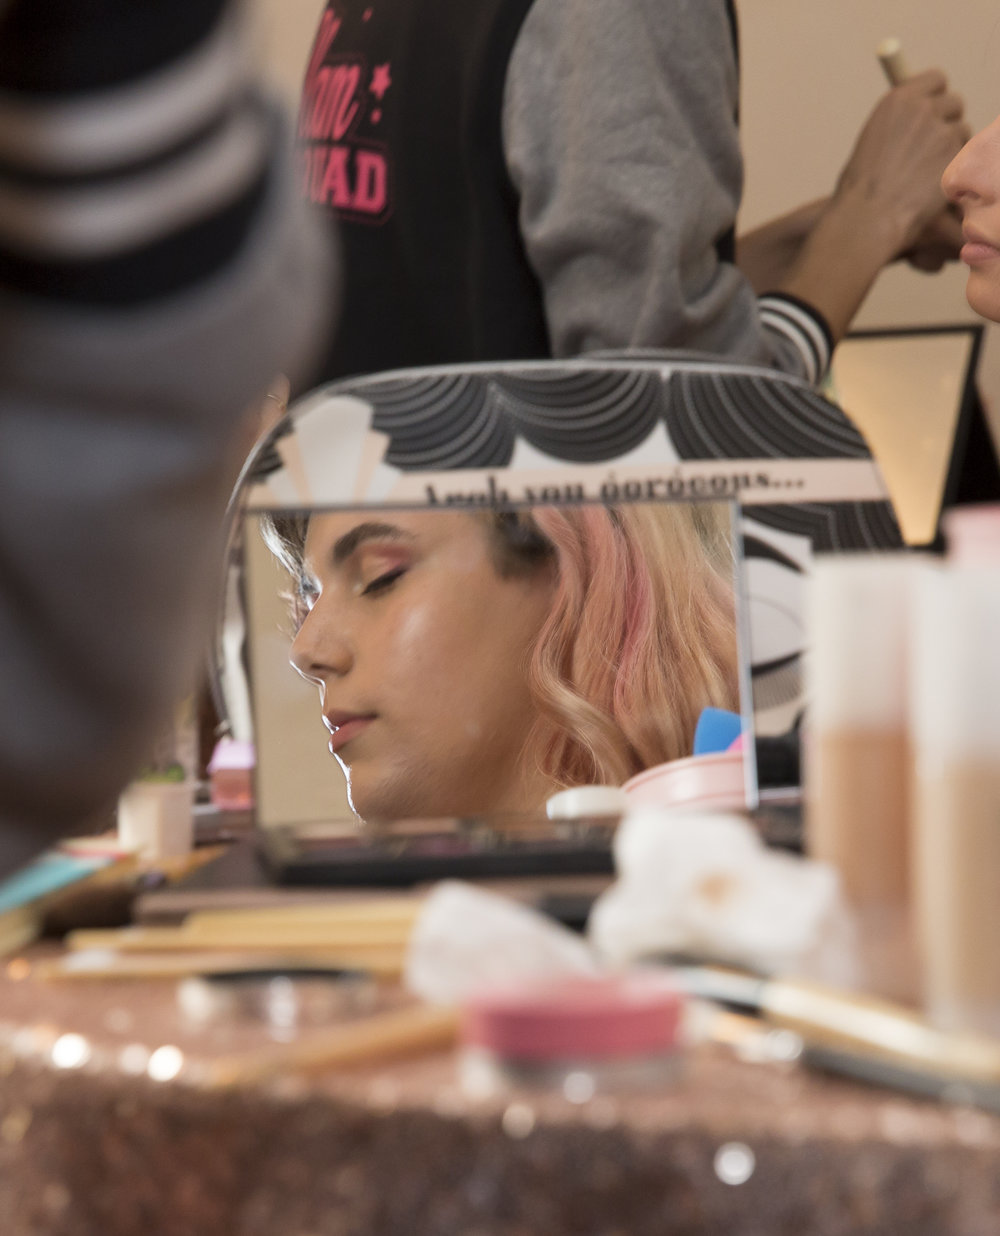 "Amy Woodfine's reflection in a makeup mirror as she is getting her makeup done before attending the LGBTQ+ Prom being held at the interfaith Church in Ocean Park in Santa Monica California on Friday May 18, 2018. The interfaith church has held ""Queer Proms"" in the past, but this year was the first that the prom's sponsor, Young People Creating Change (YPCC), partnered with the Princess Project Los Angeles (PPLA), Benefit Cosmetics, and Teen Vogue to produce the event. (Matthew Martin/Corsair Photo)"